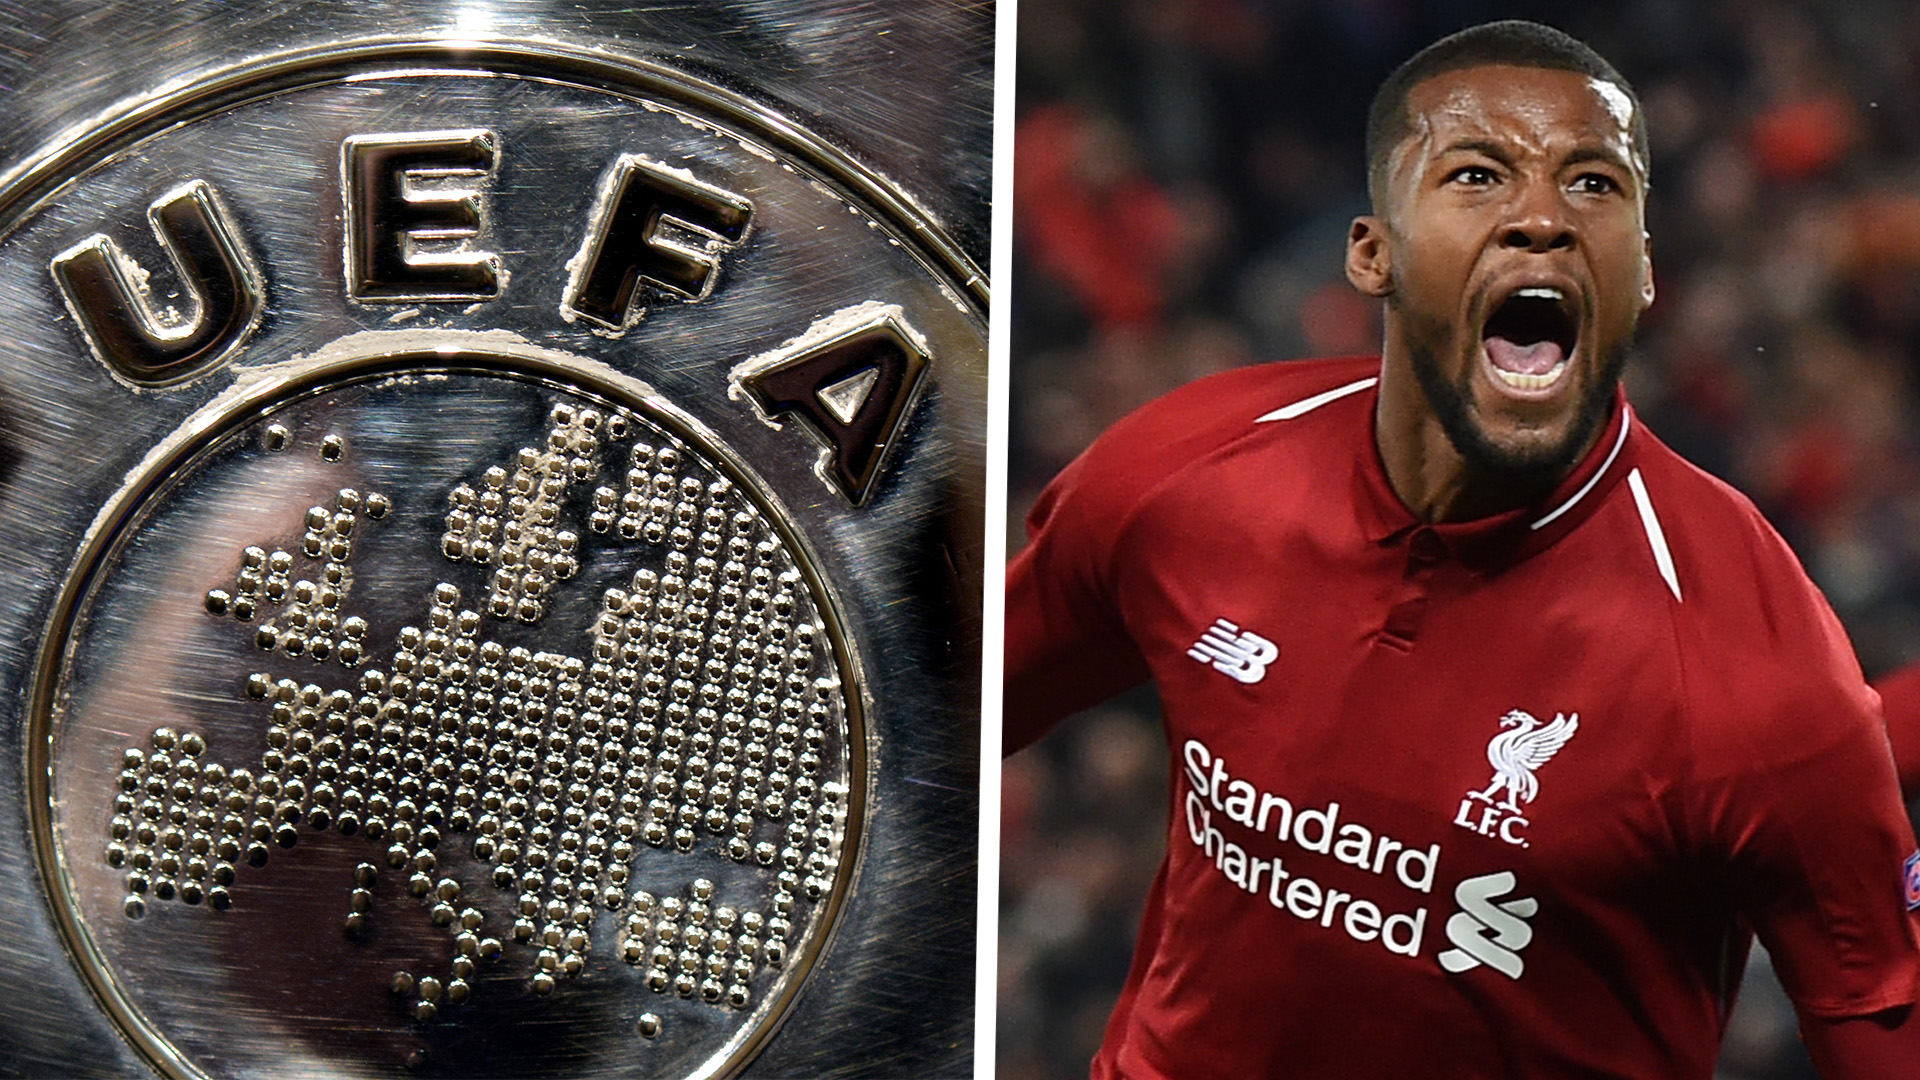 Champions League 2019: Has one country had all the European finalists before?